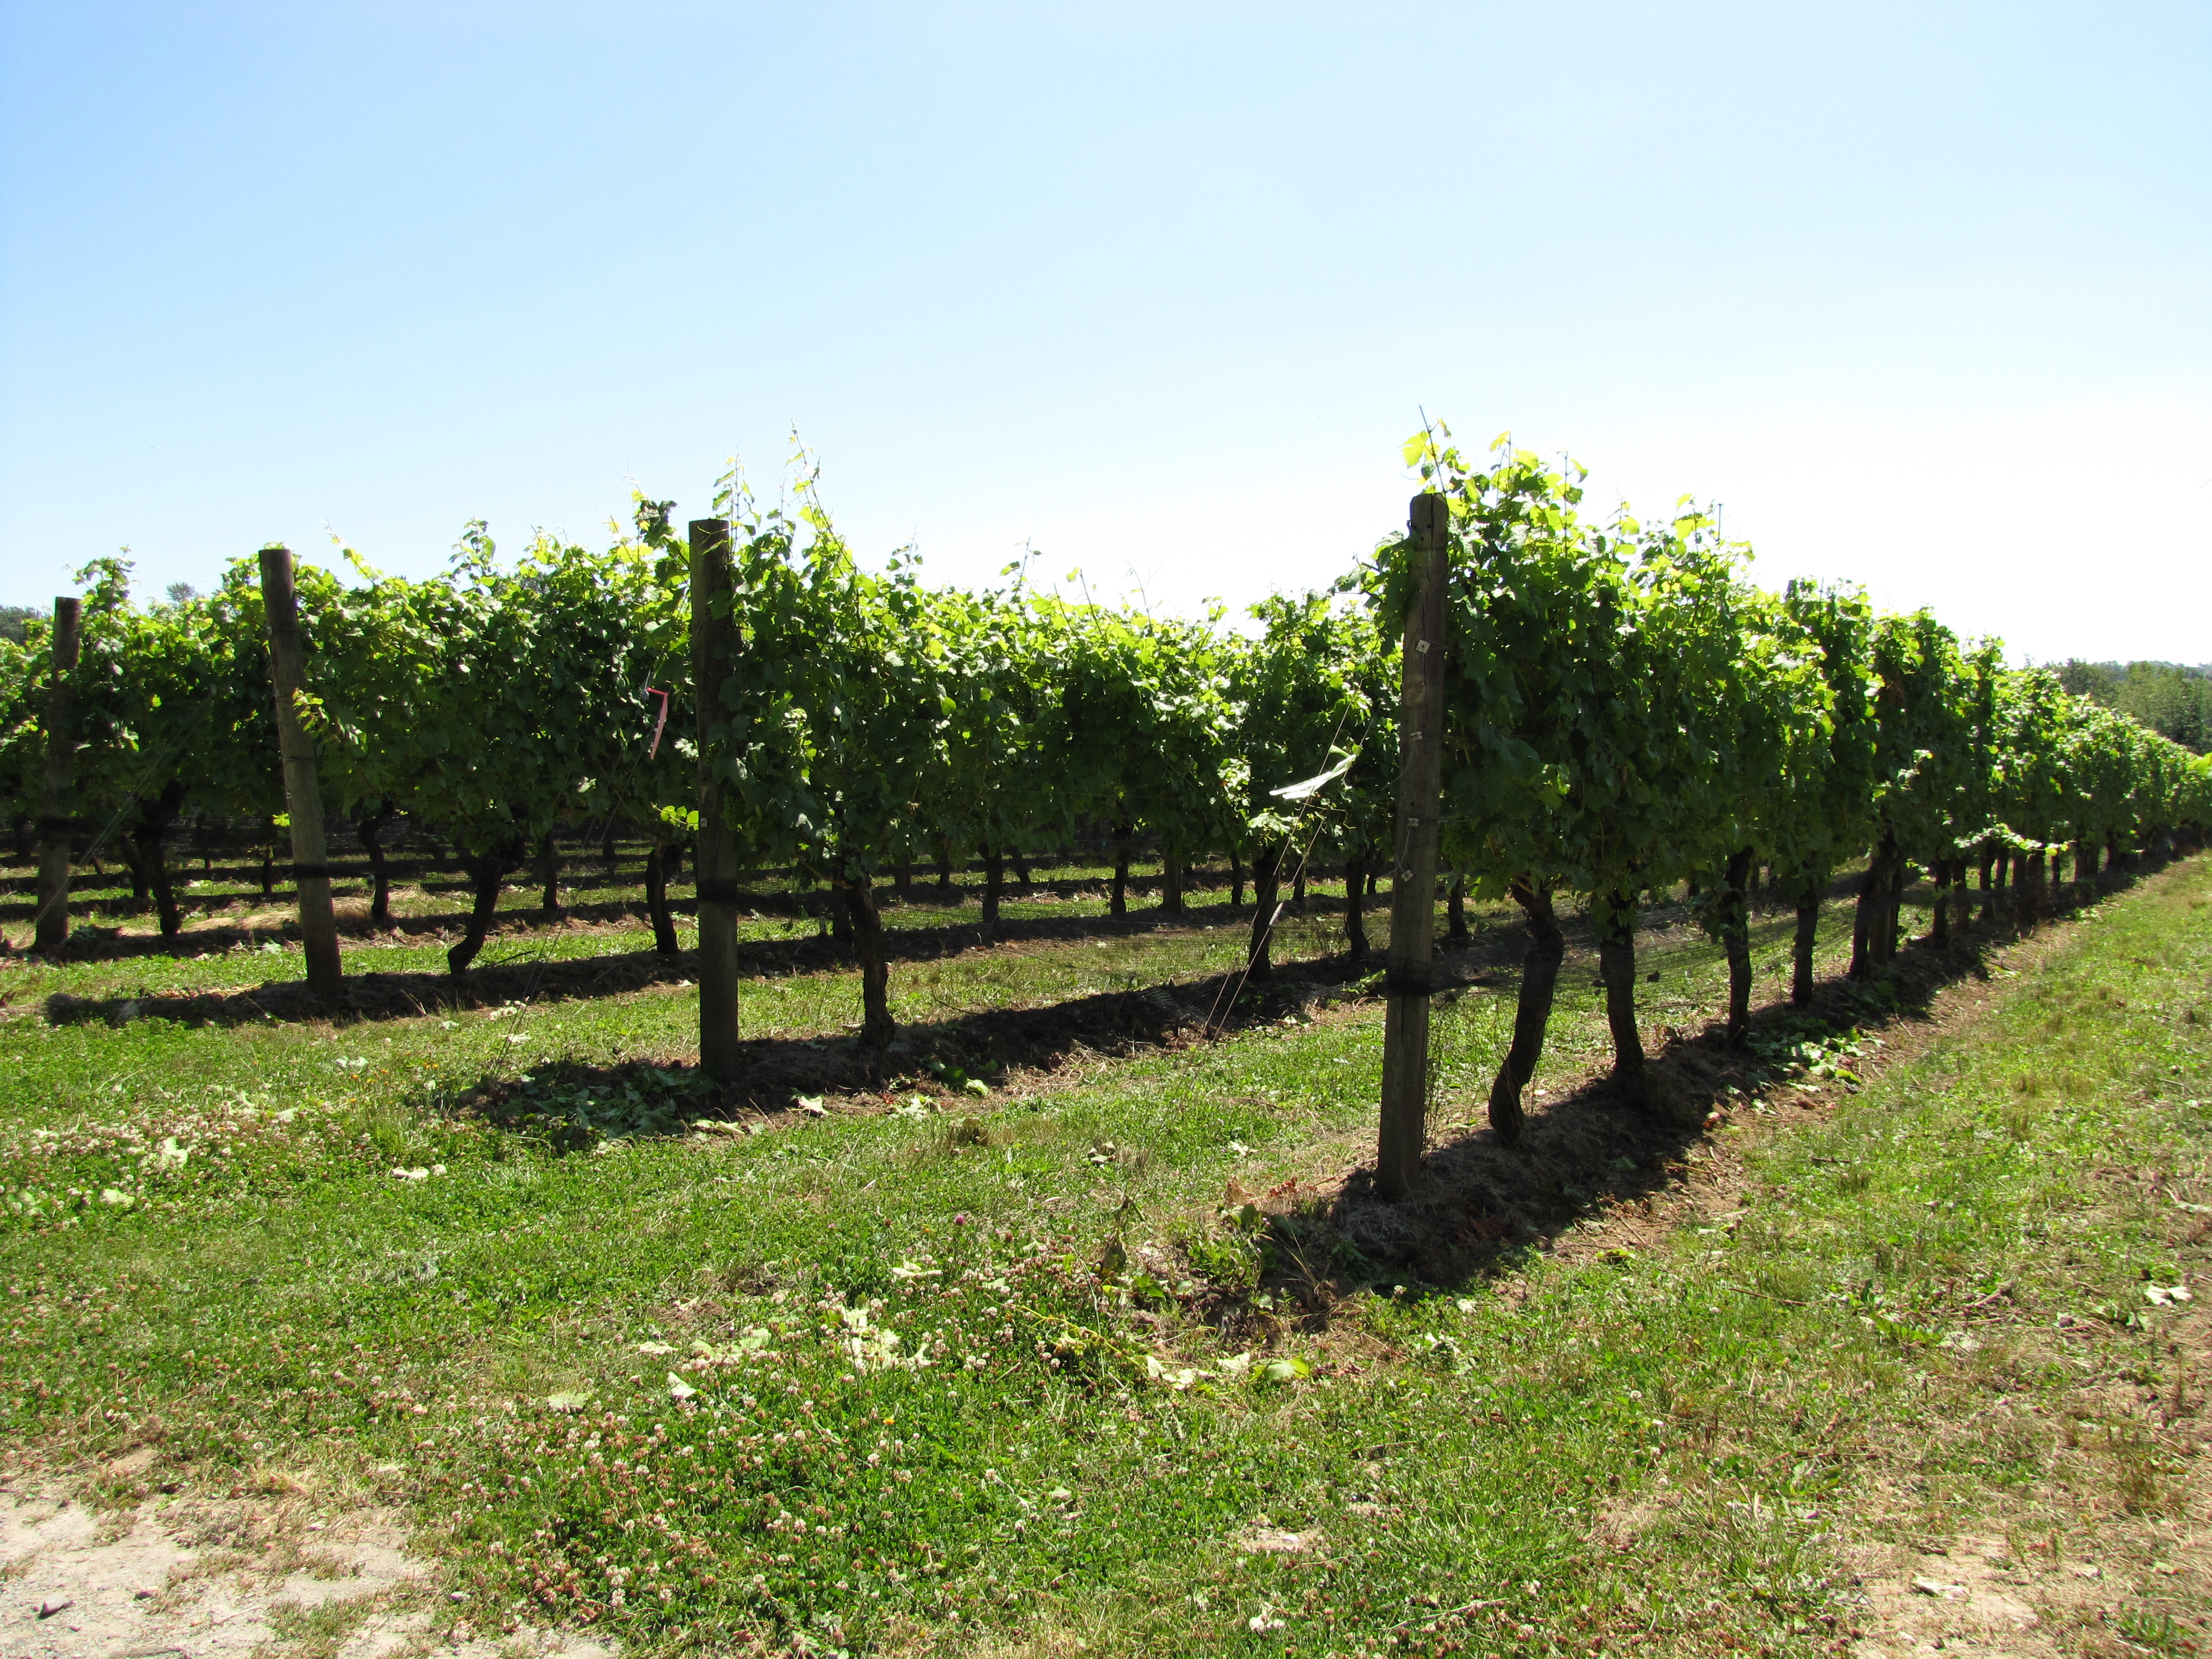 rows of fruit trees ready for harvesting for wine